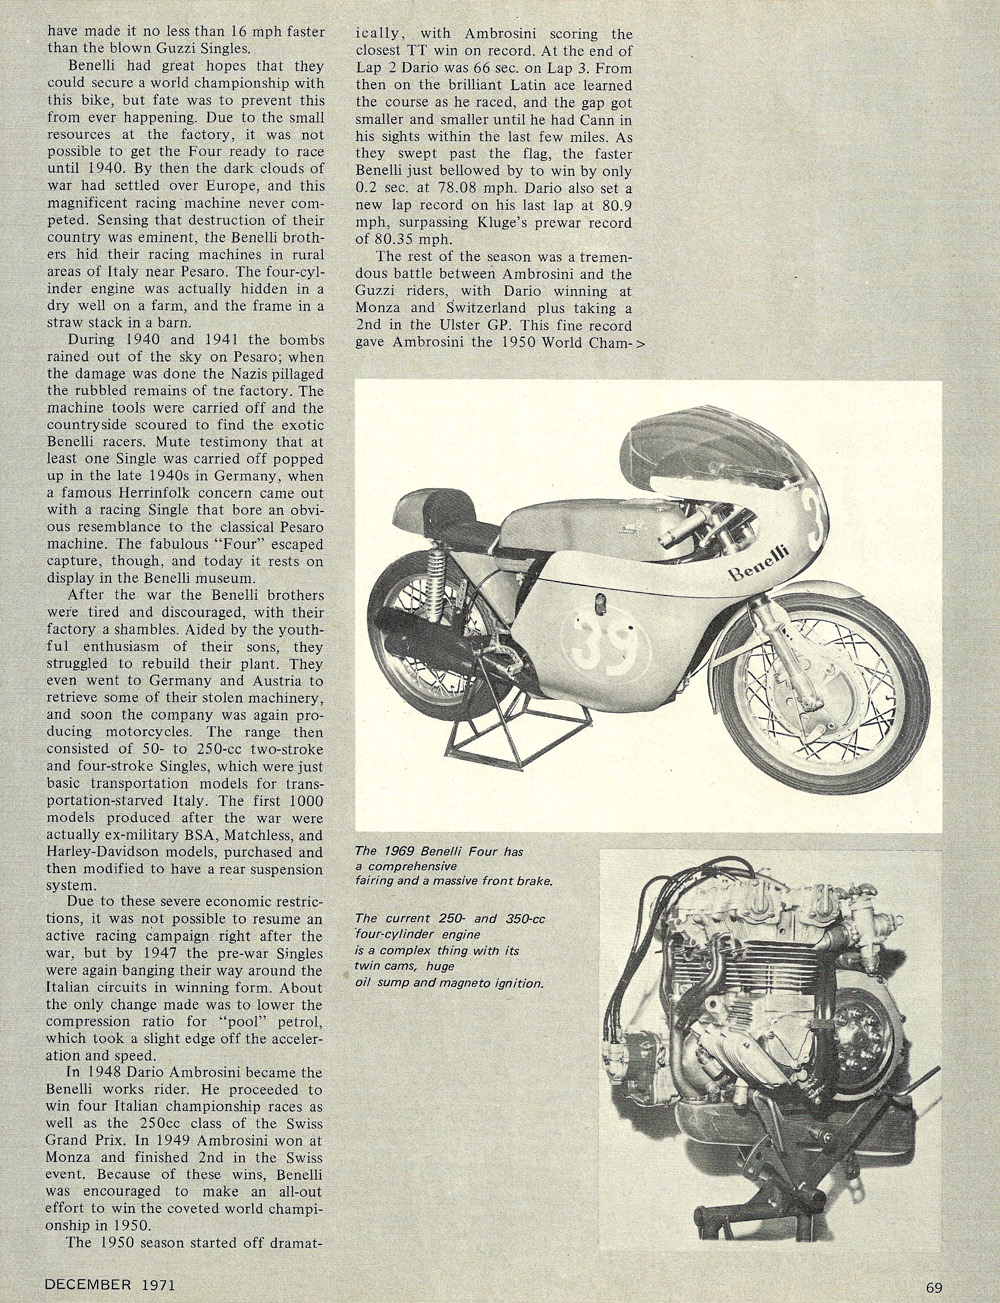 1971 History of Benelli 05.jpg